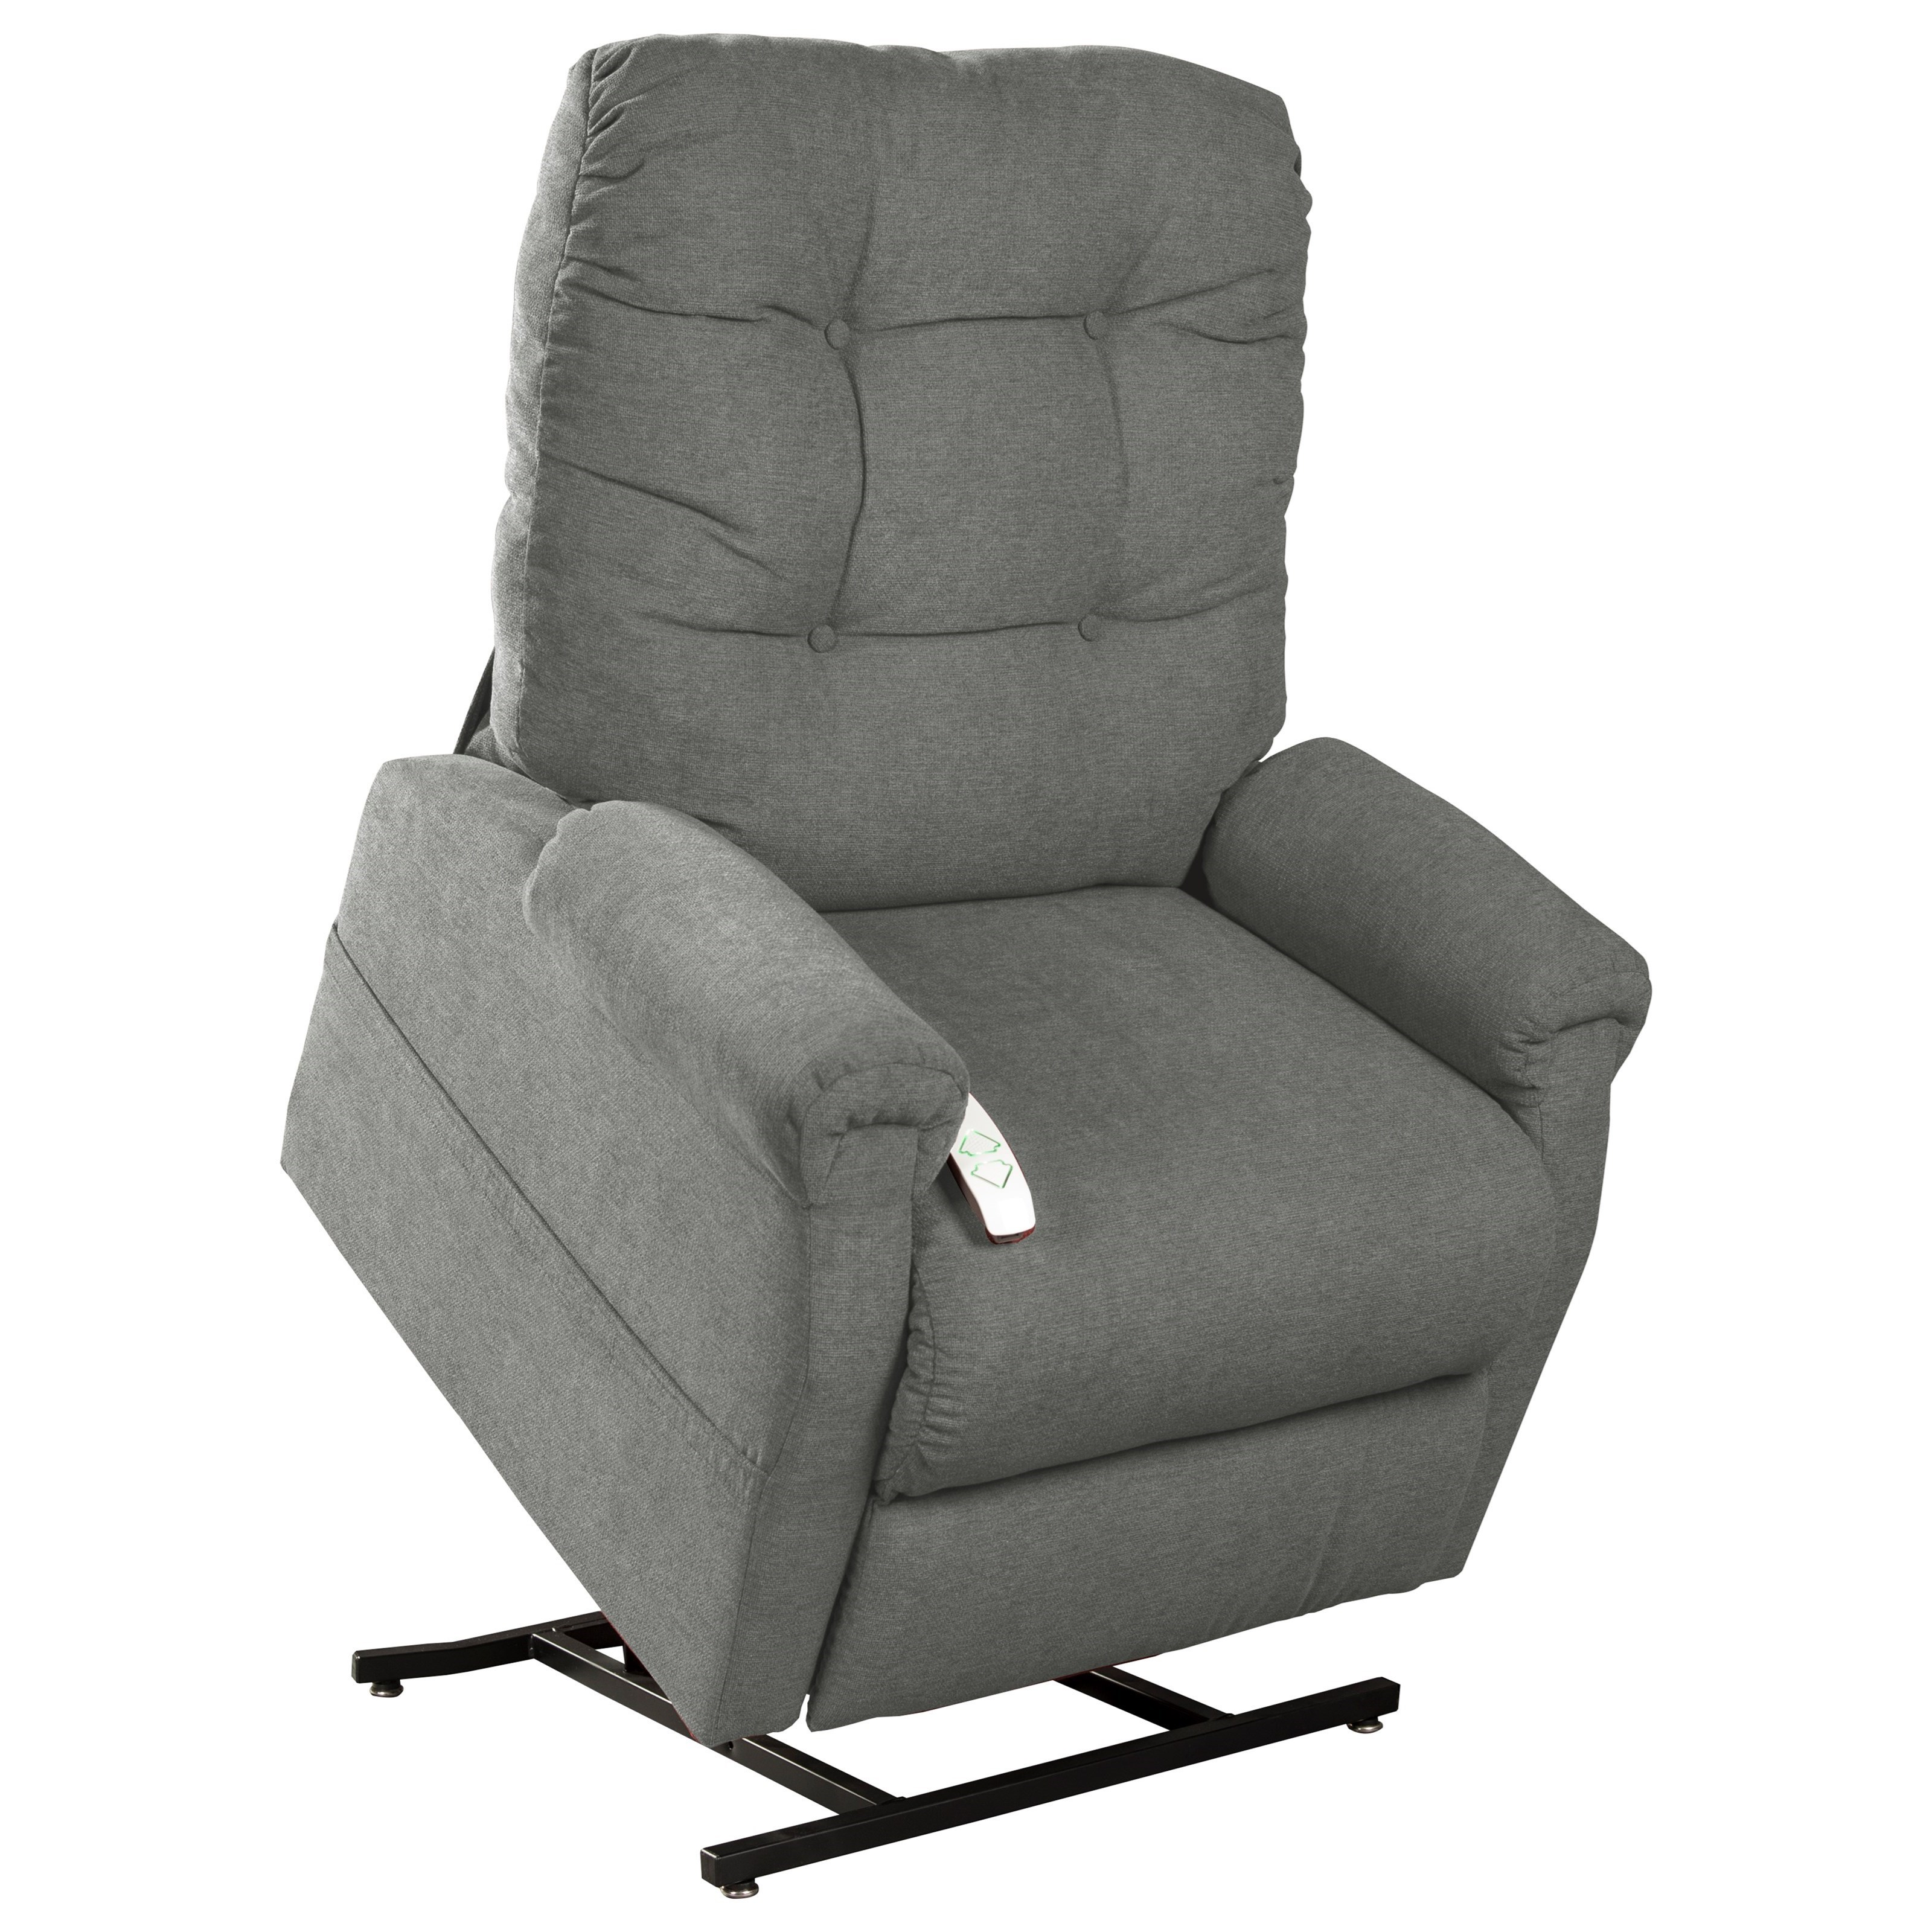 Lift Chairs 3-Position Reclining Lift Chair by Windermere Motion at Lapeer Furniture & Mattress Center